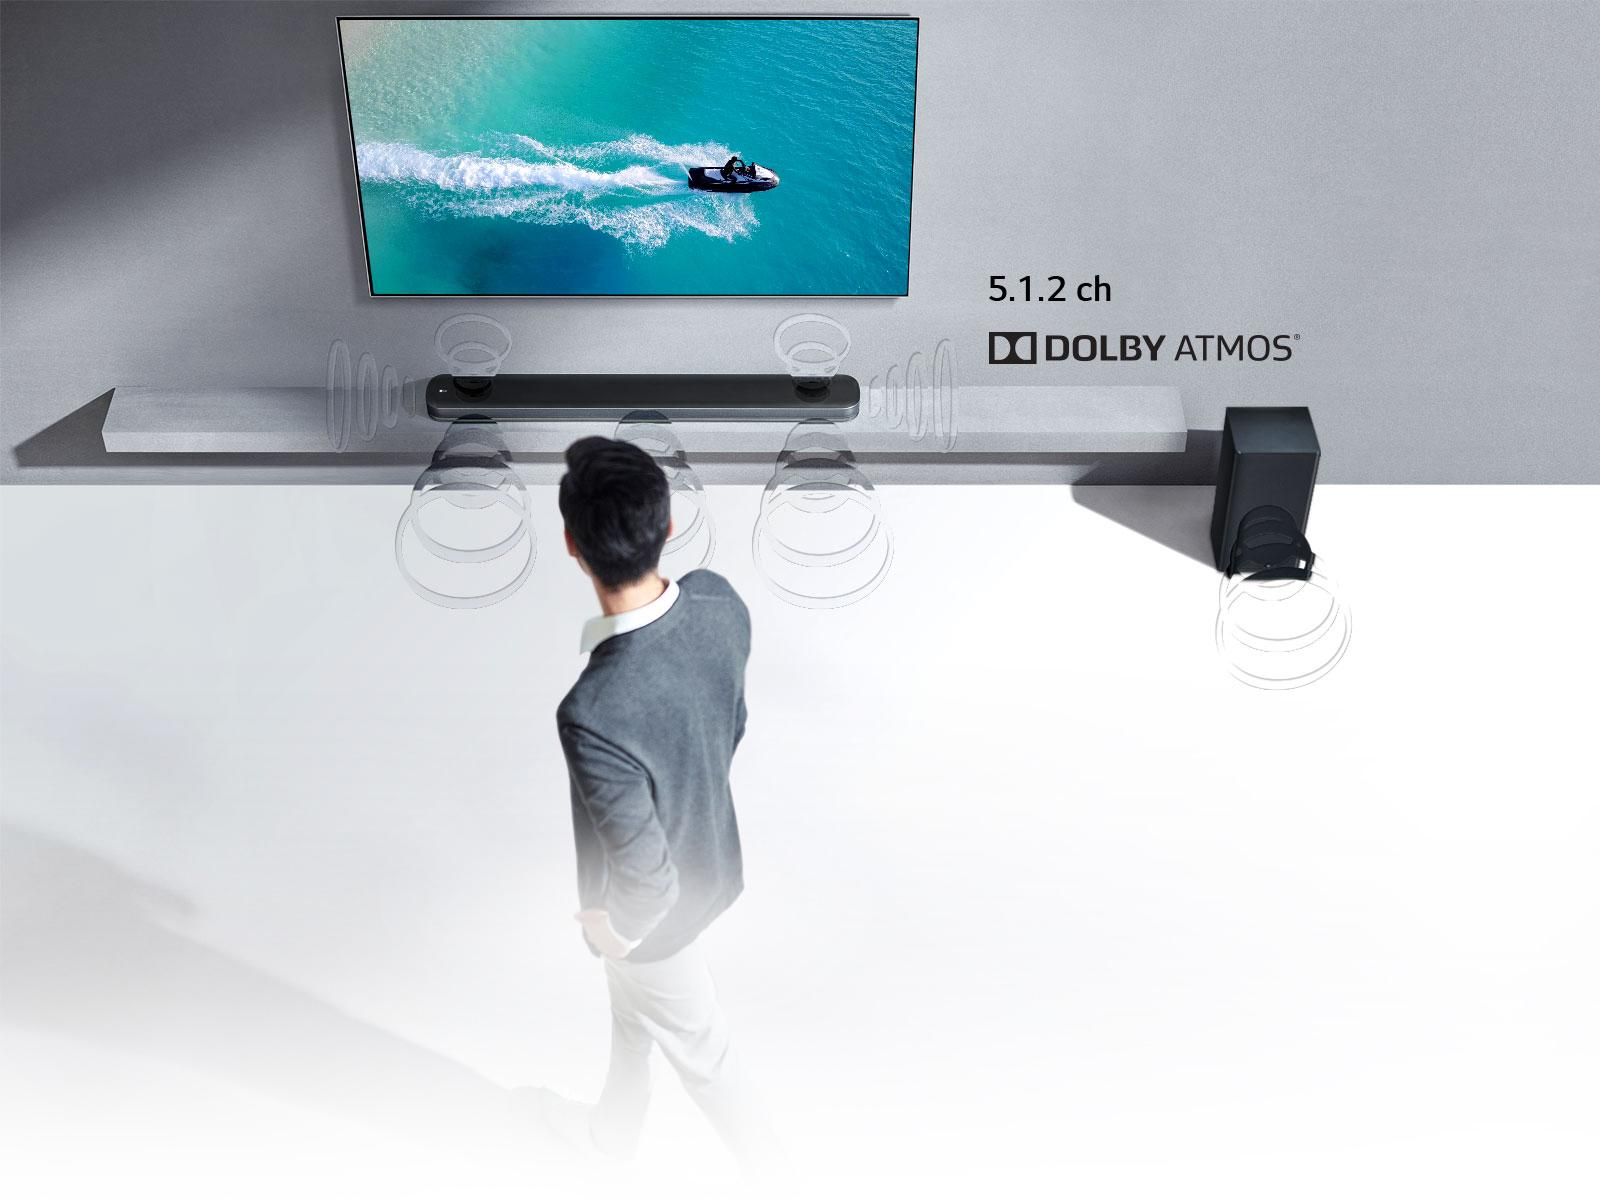 LG SKC9 5 1 2 Channel High Resolution Audio Sound Bar with Dolby Atmos